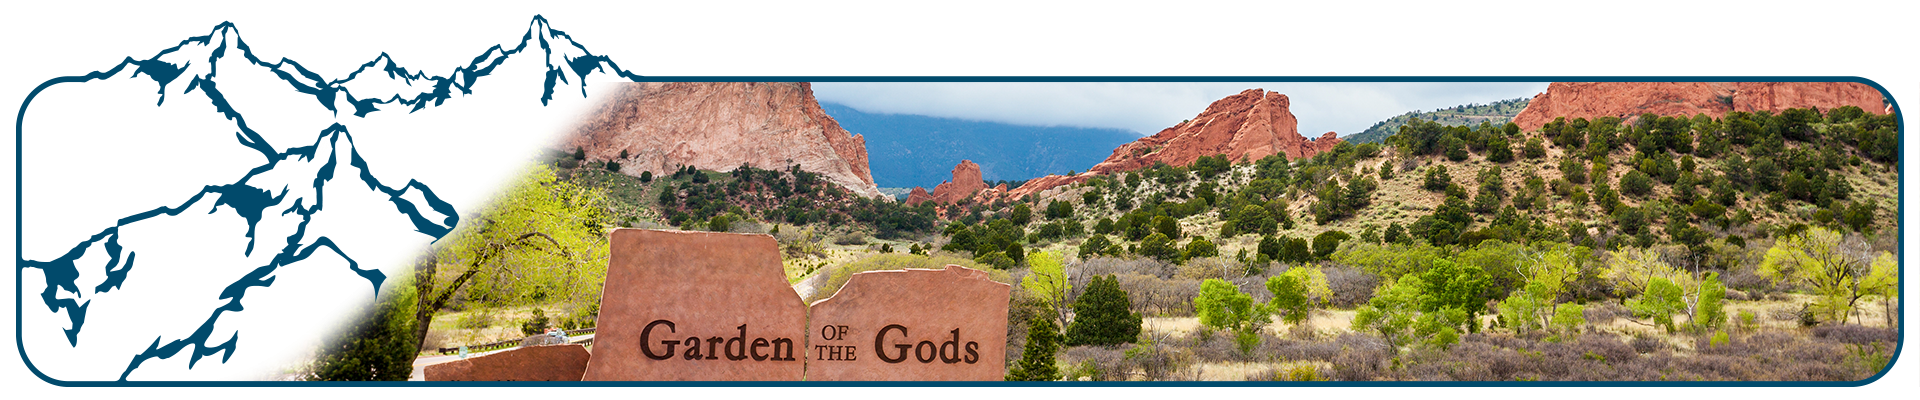 Entrance to the Garden of the Gods in Colorado.